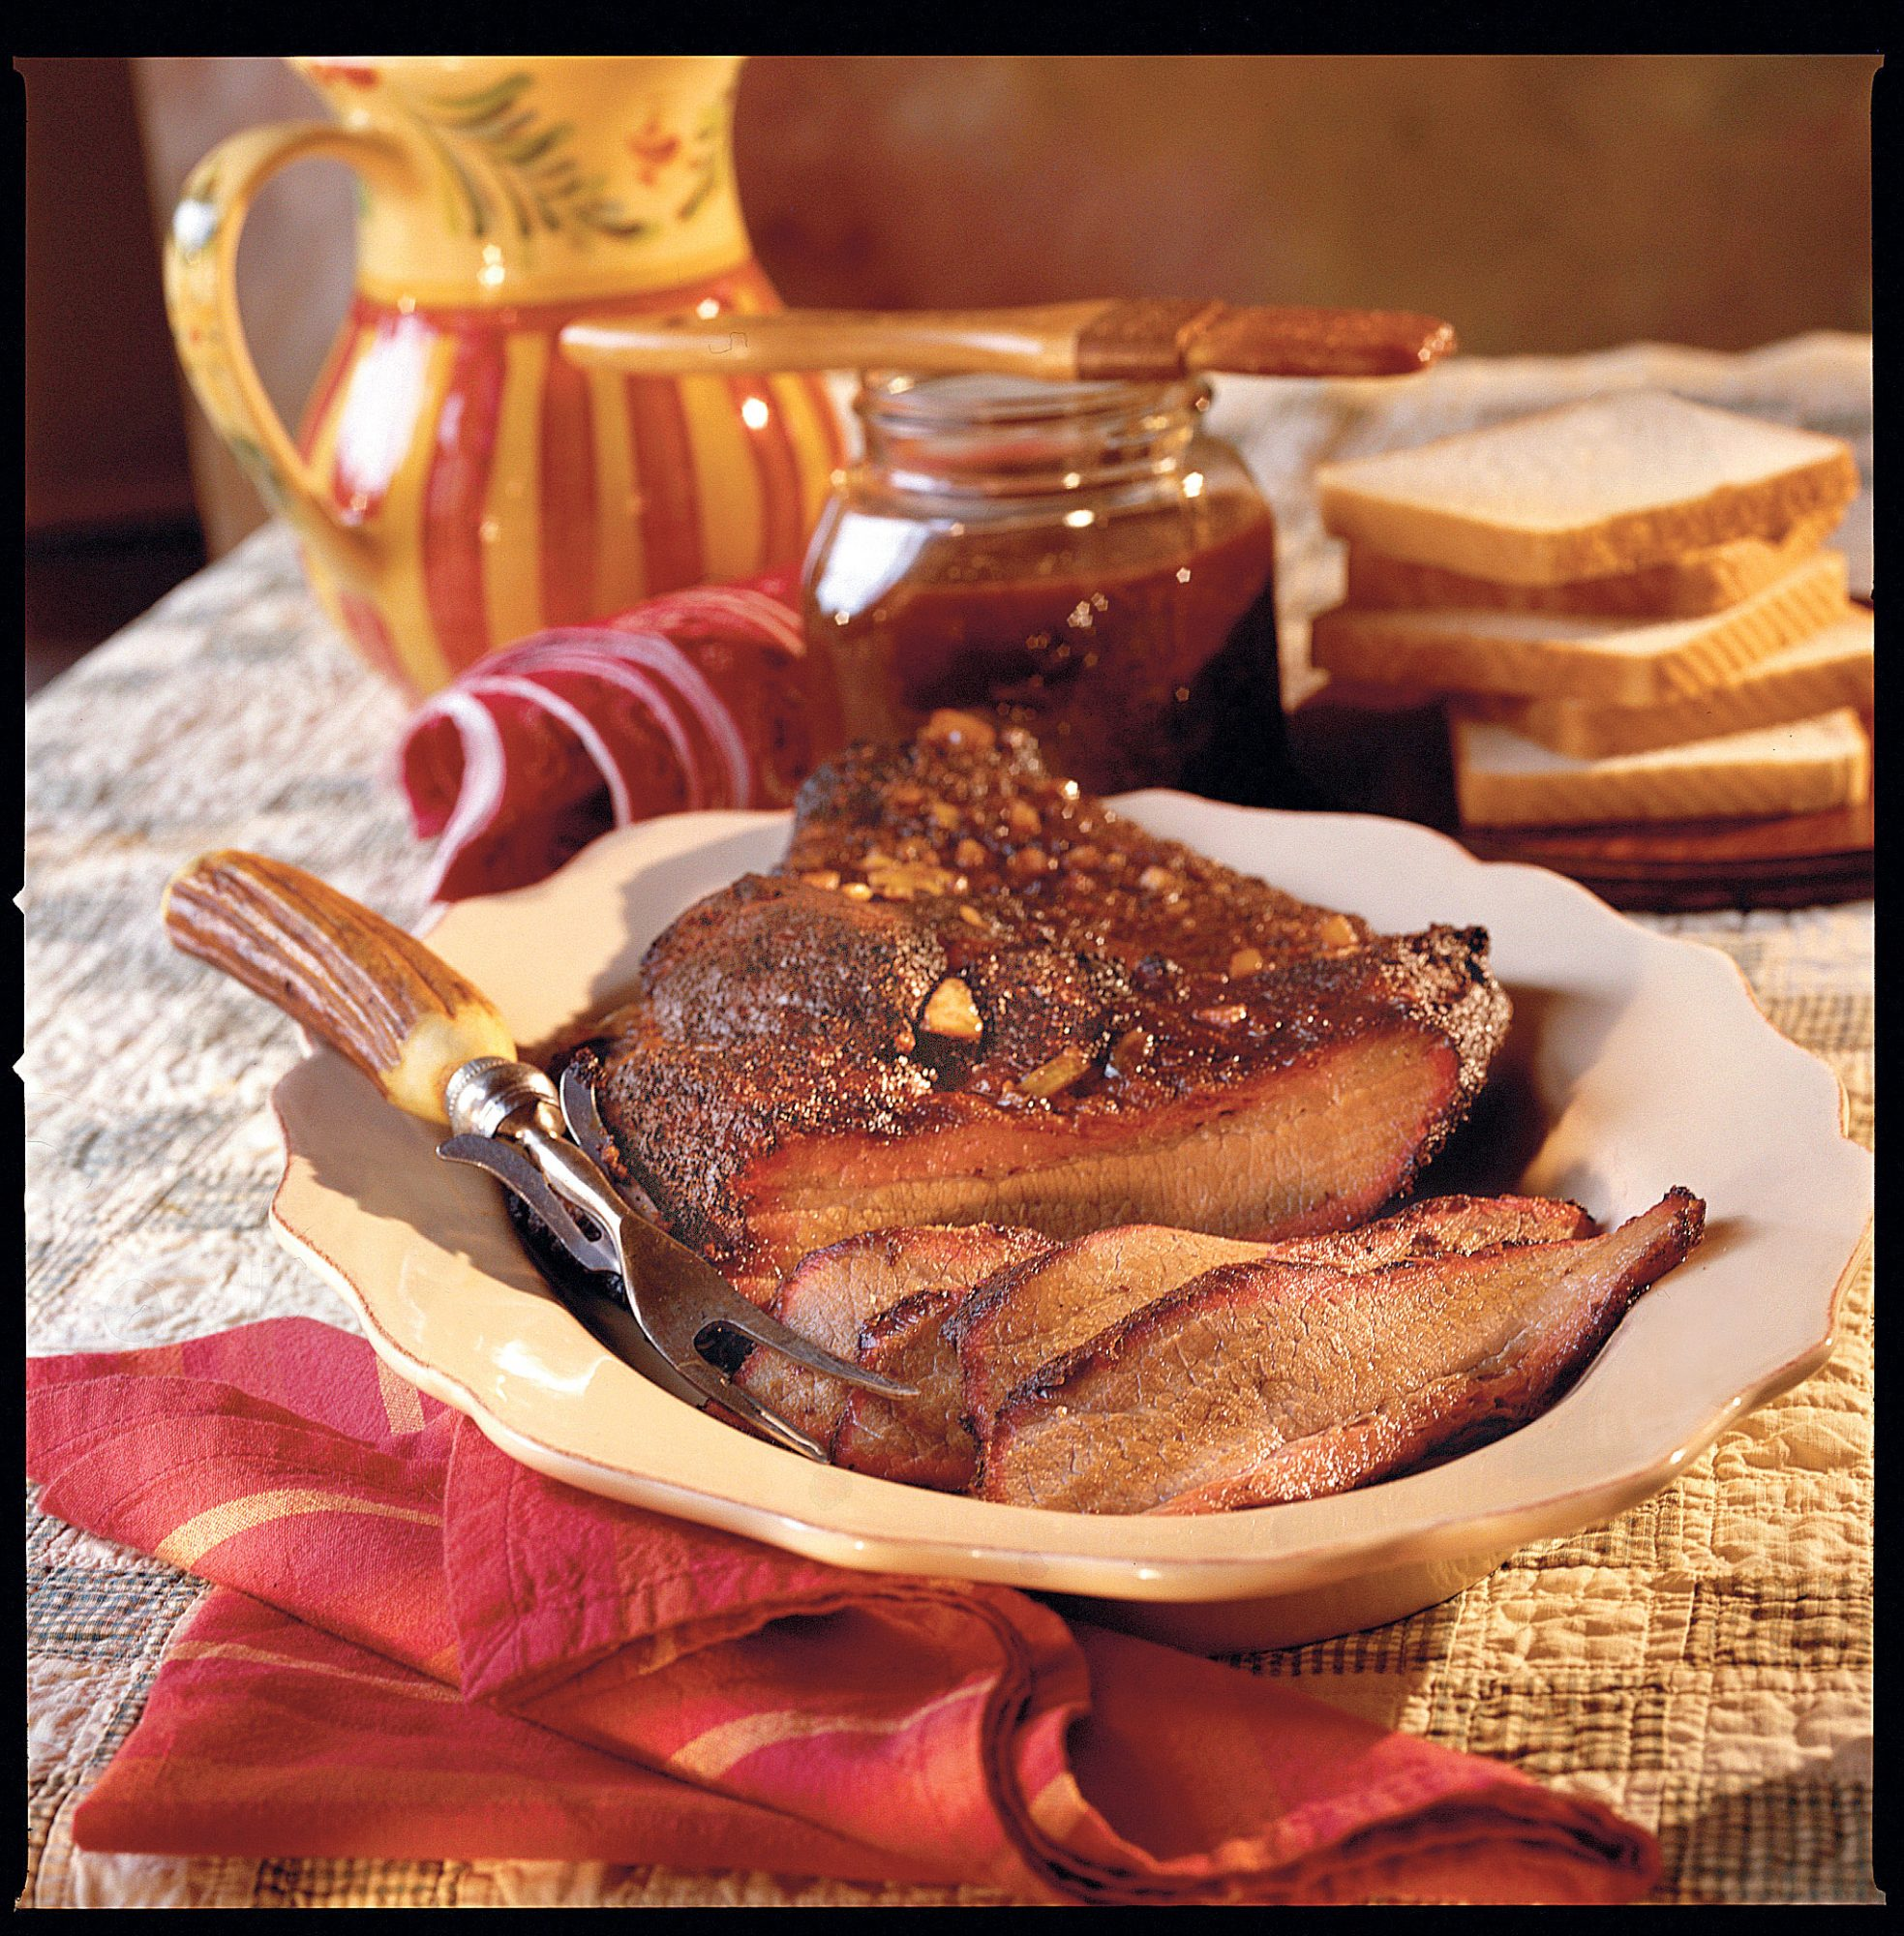 Taste of the South: Texas-Style Brisket